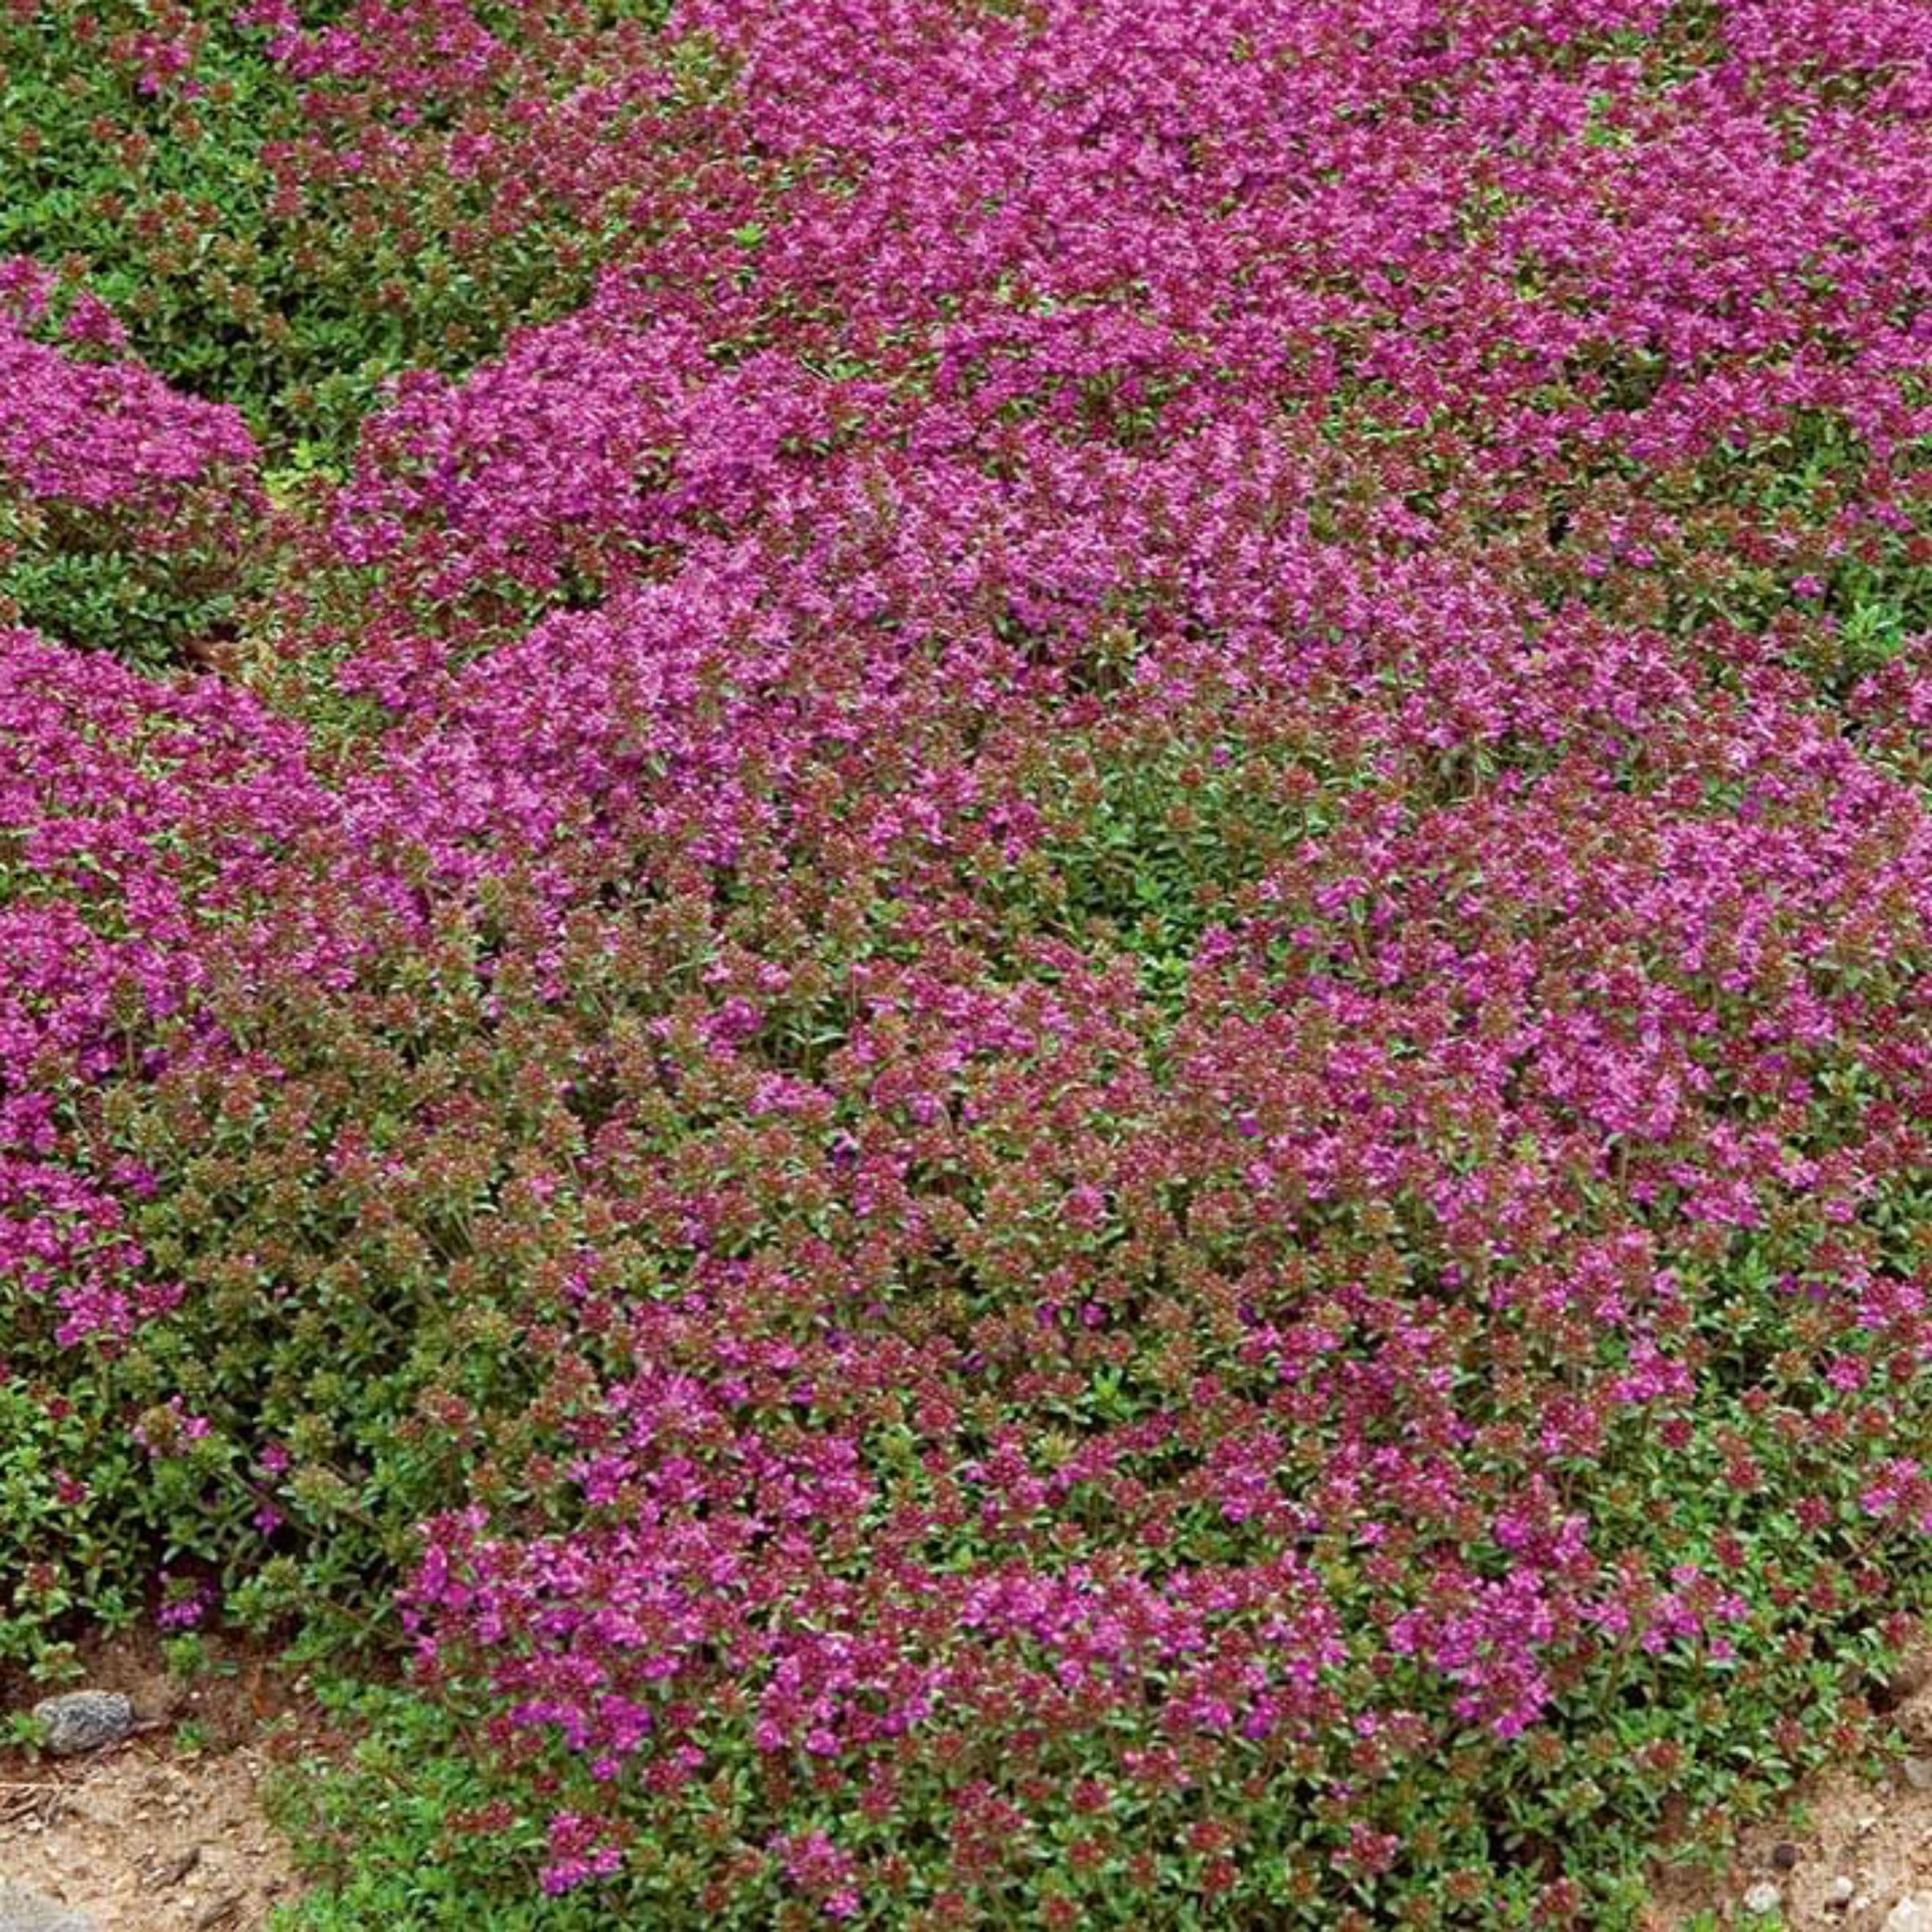 Wild thyme organic cultivation